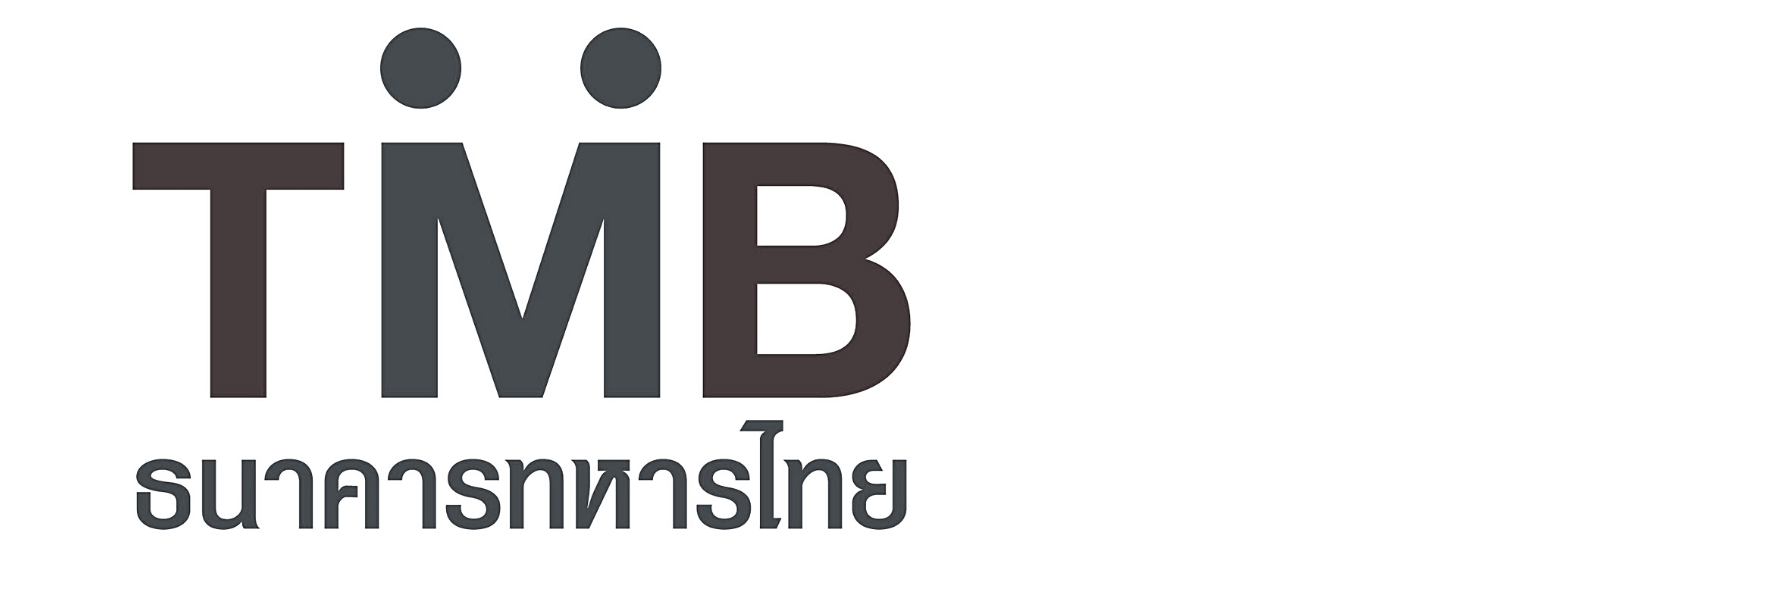 This is the TMB Bank logo.